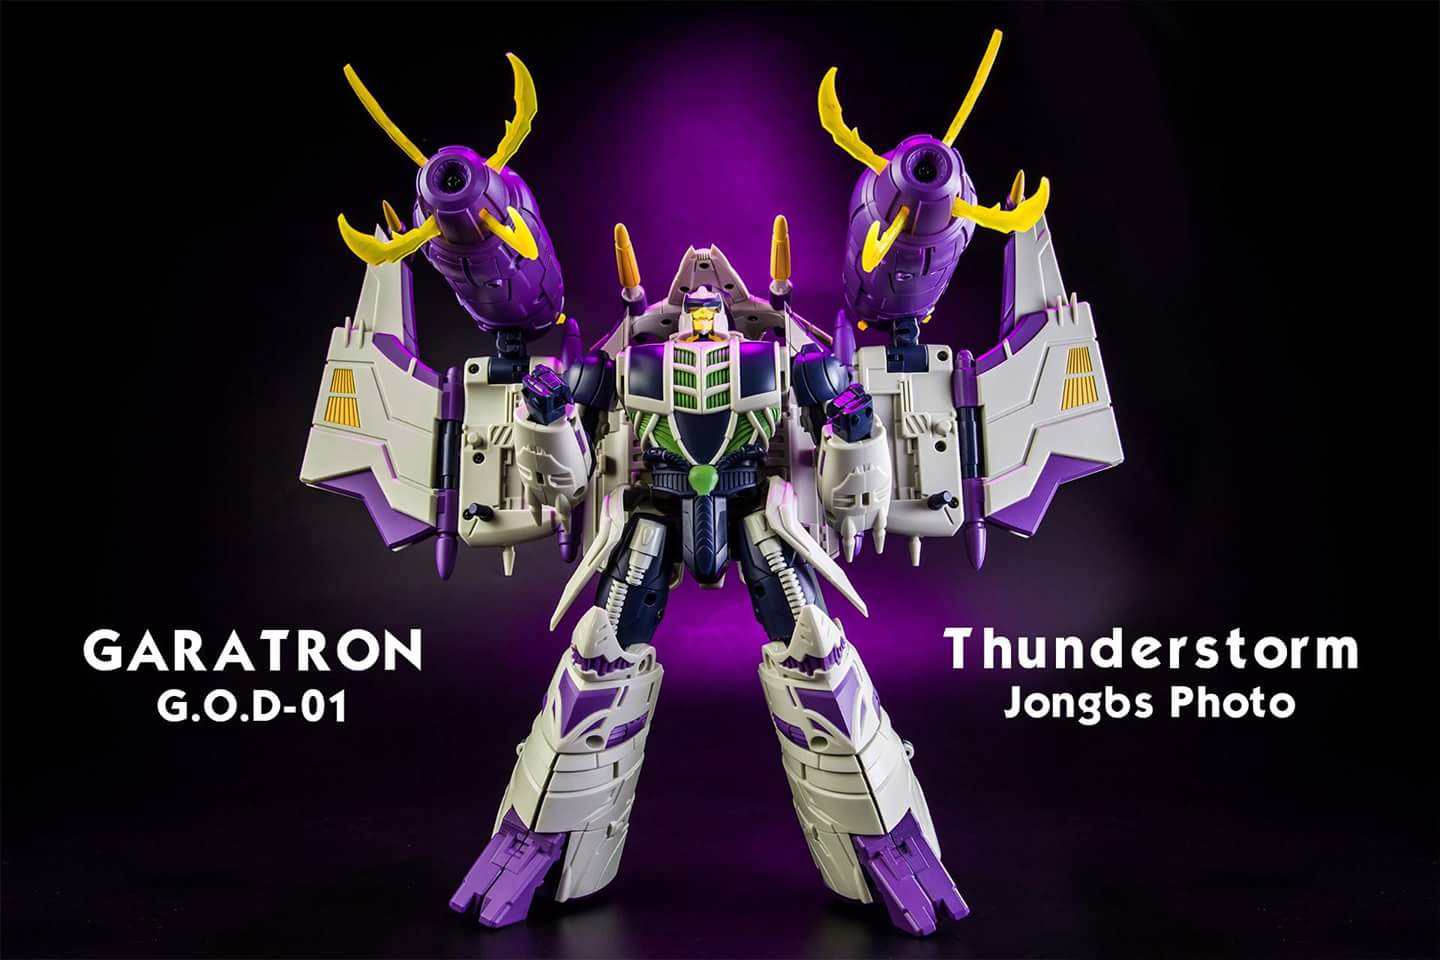 [Garatron] Produit Tiers - Gand of Devils G.O.D-01 Thunderstorm - aka Thunderwing des BD TF d'IDW - Page 2 NIvEyHuH